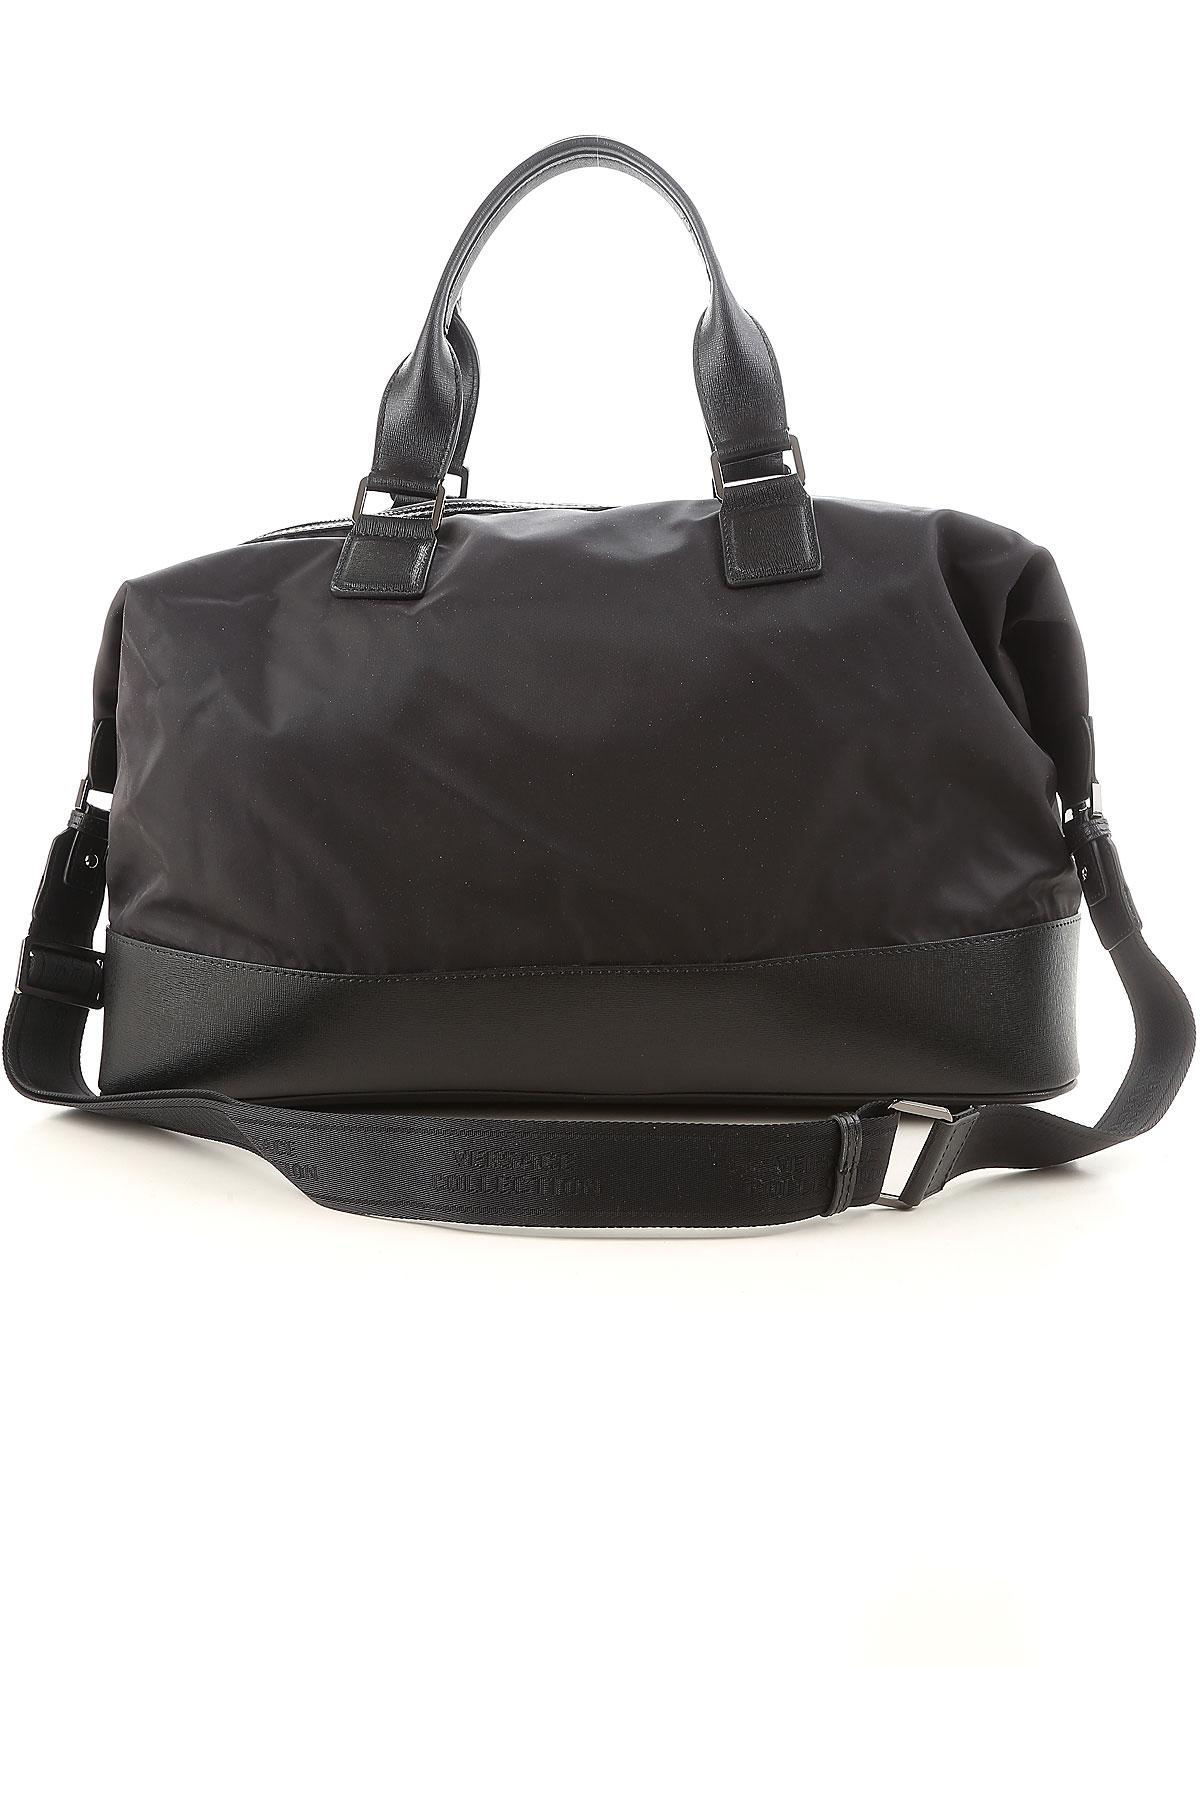 1979c4a08f0b Versace Bags For Men in Black for Men - Lyst